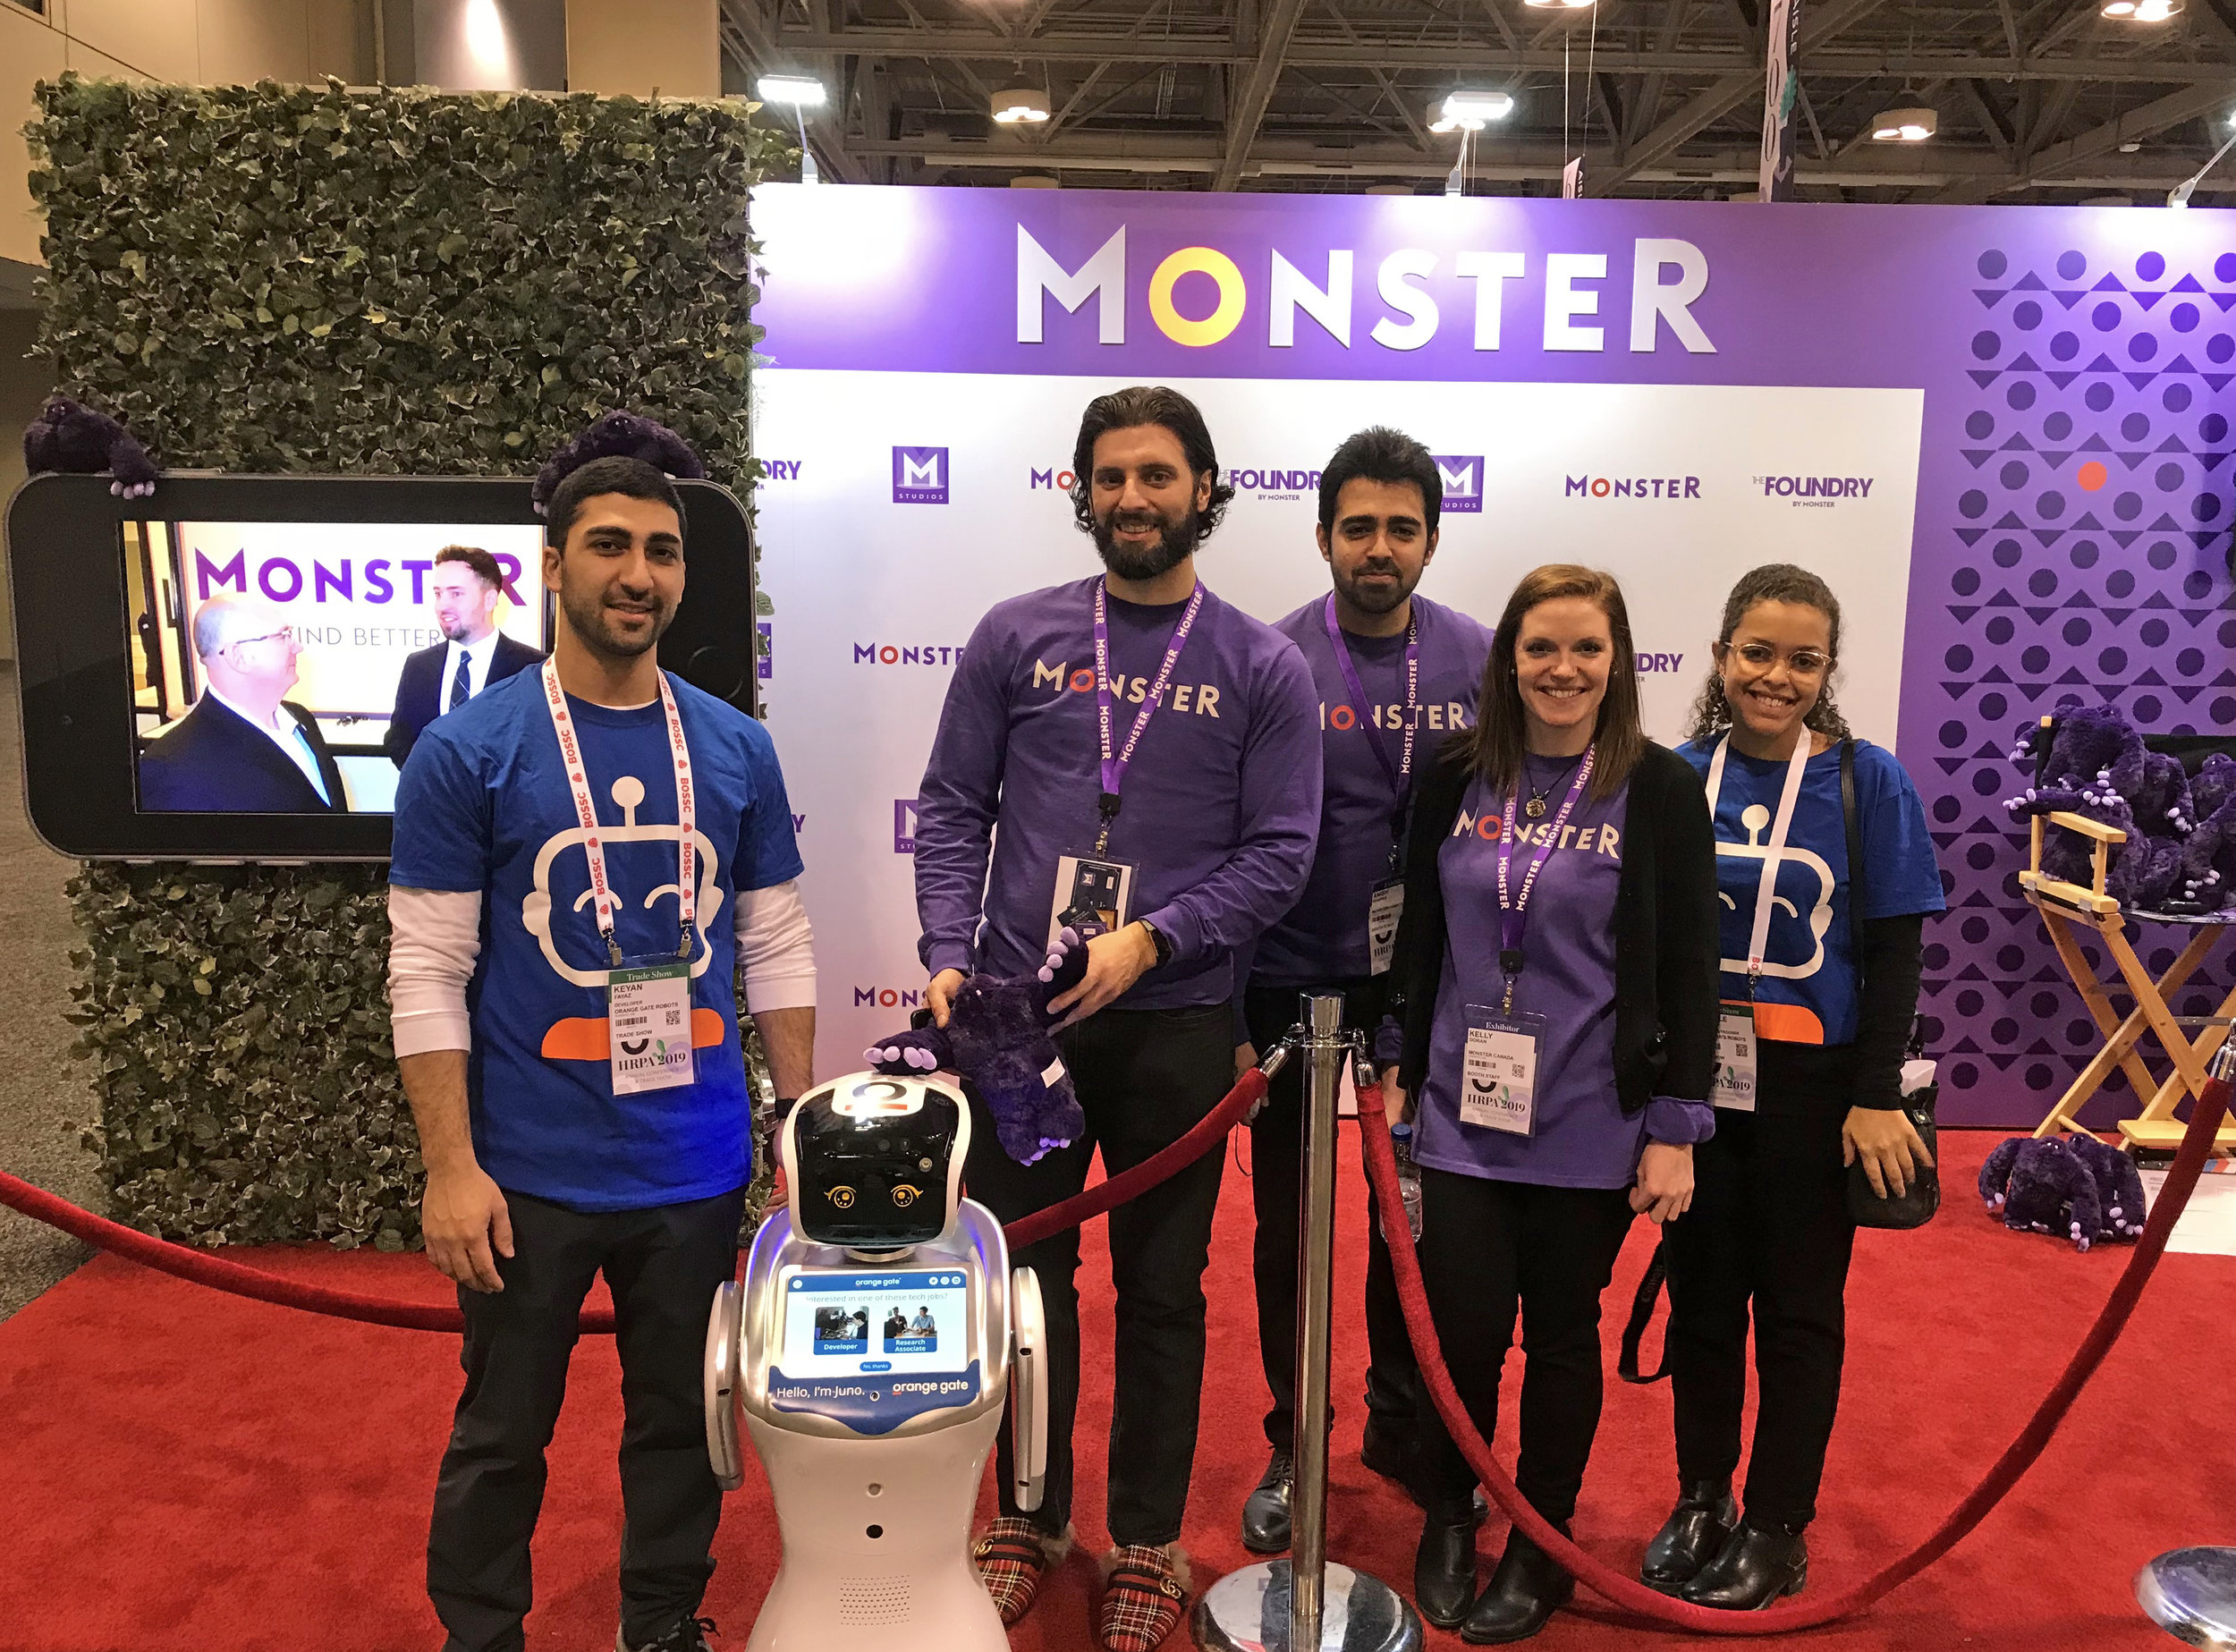 Juno and Orange Gate team at Monster's booth.